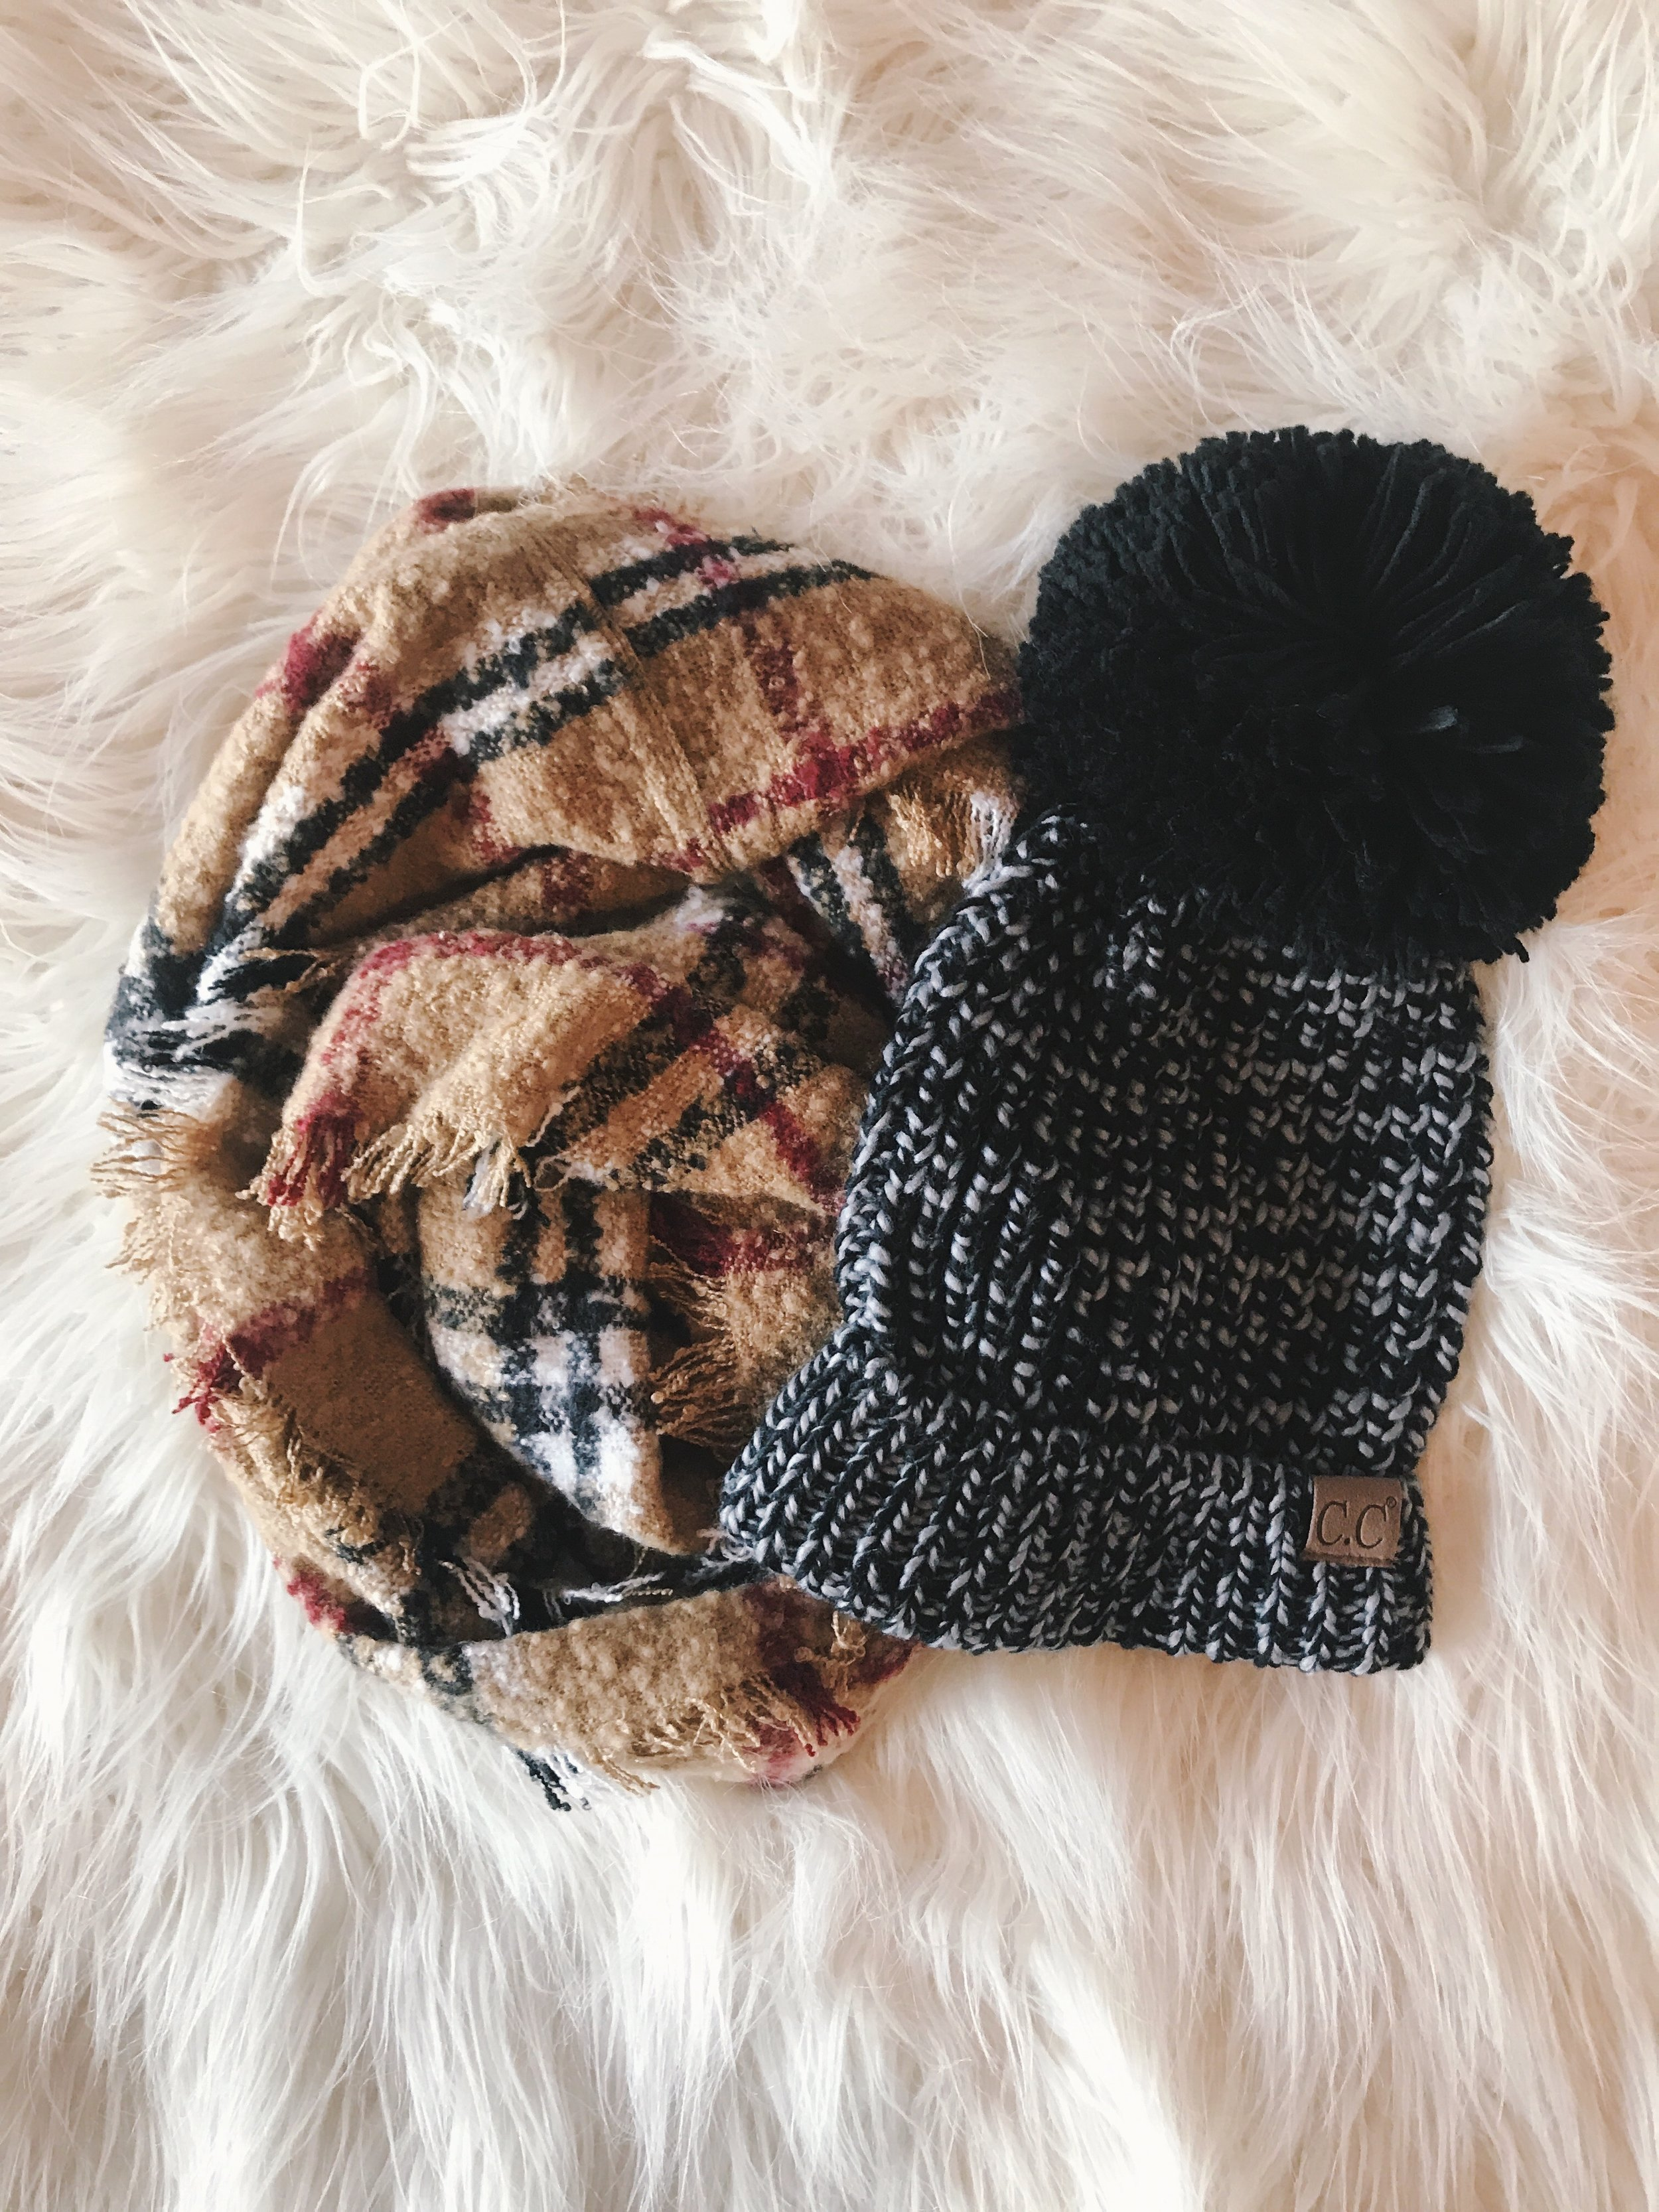 Warm & Cozy - Who doesn't enjoy a cozy gift on a cold winter night. We have a TON of hats, scarves and mittens to add into your loved ones stocking or pair it with a larger item for a full gift they'll use all season long.Hat: $25.00Scarf: $20.00